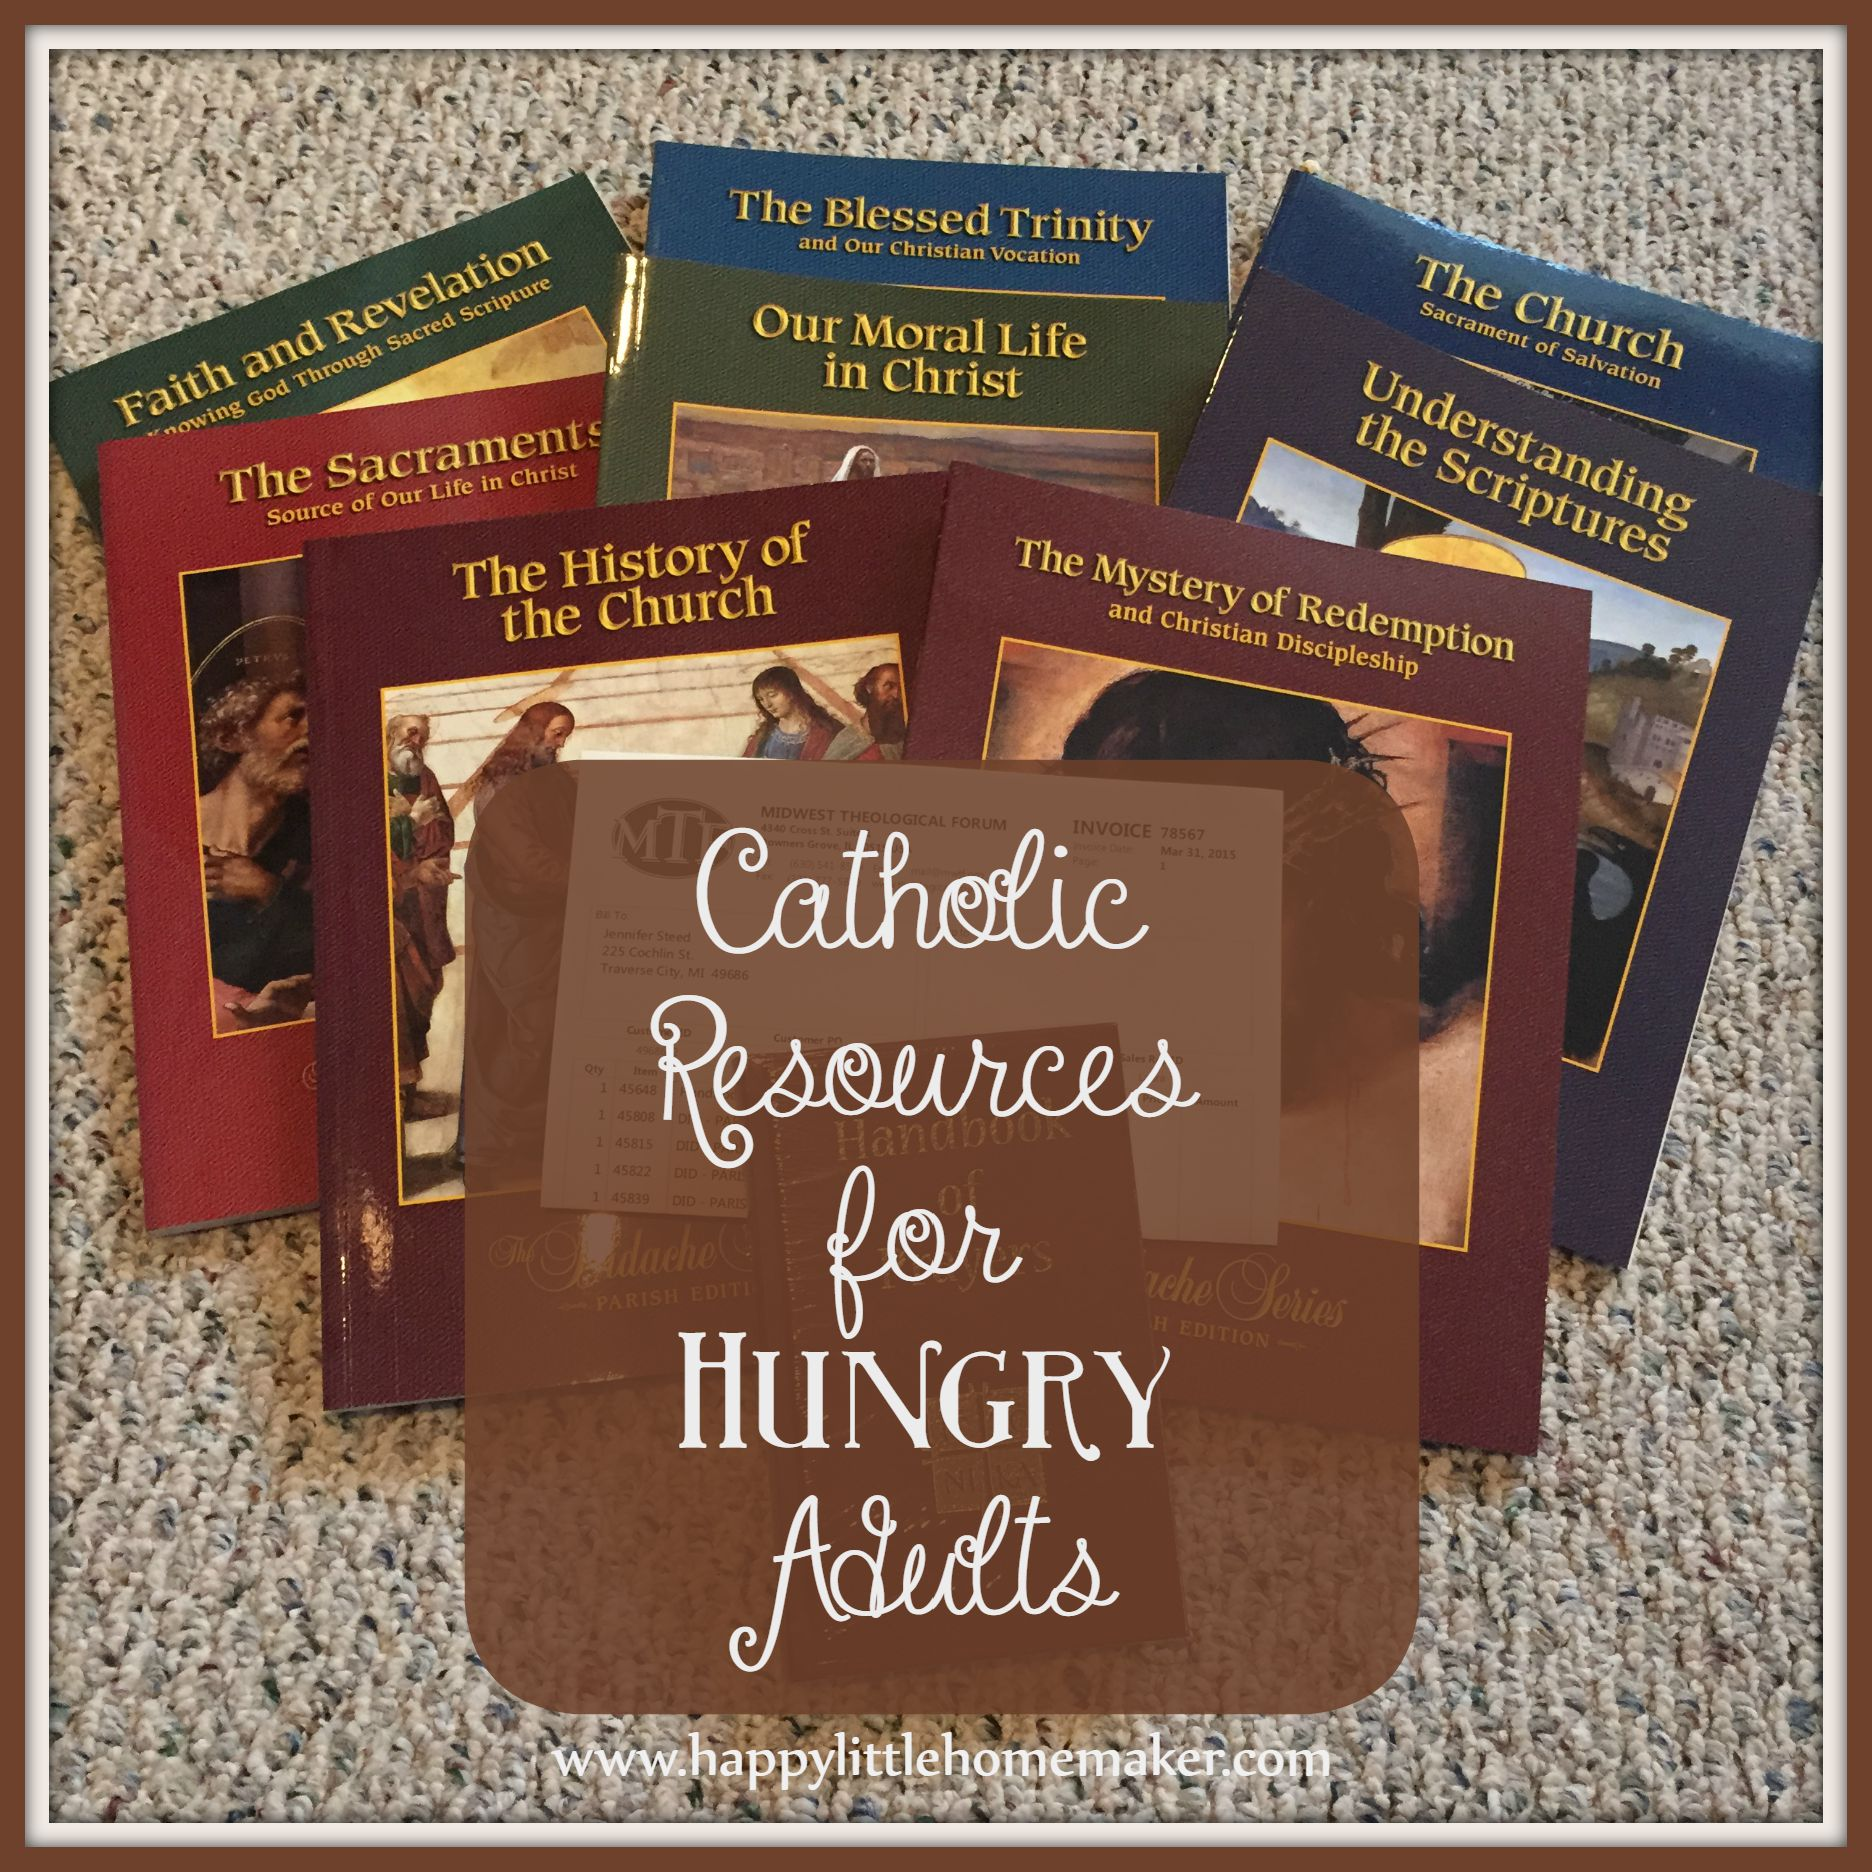 Didache Parish Series - Catholic Resources for Hungry Adults